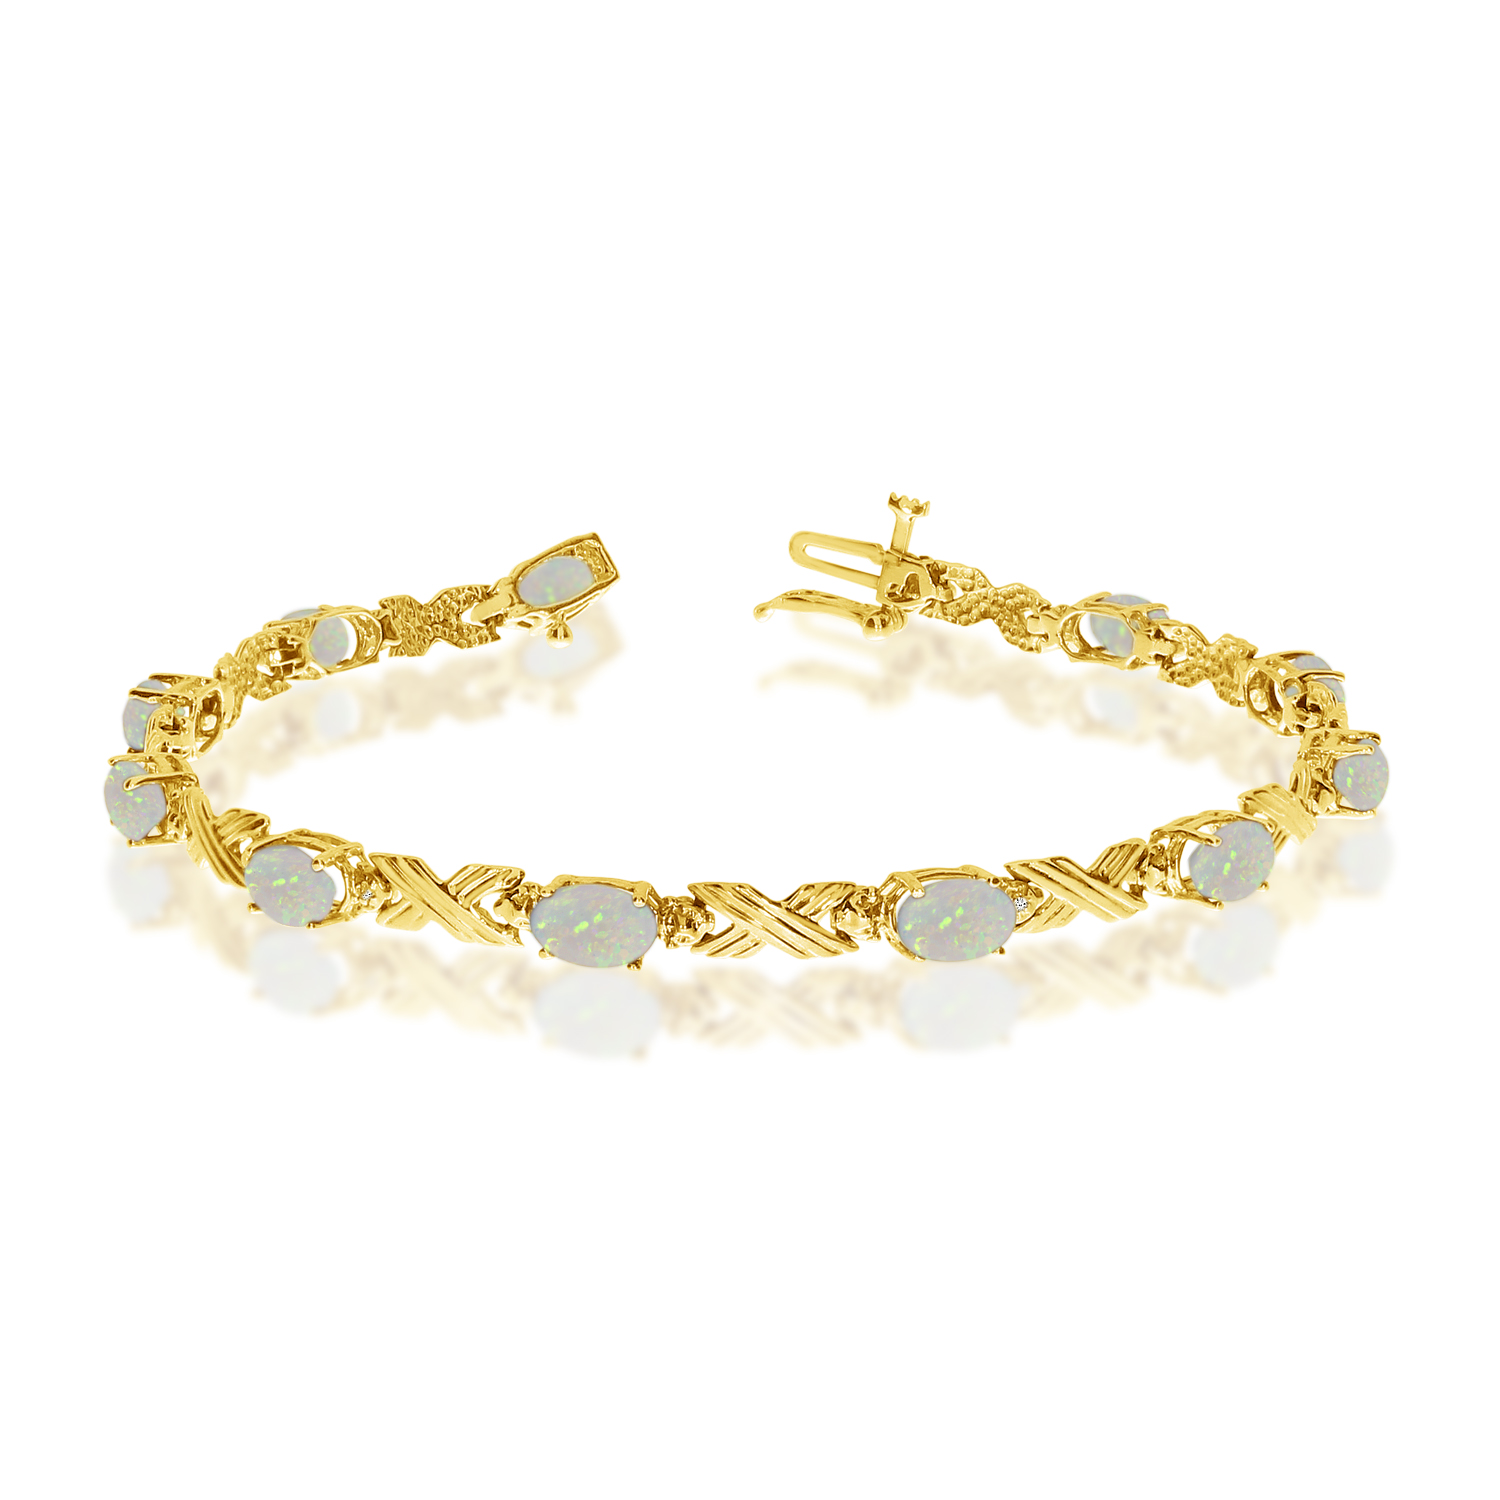 14K Yellow Gold Oval Opal and Diamond Bracelet by LCD